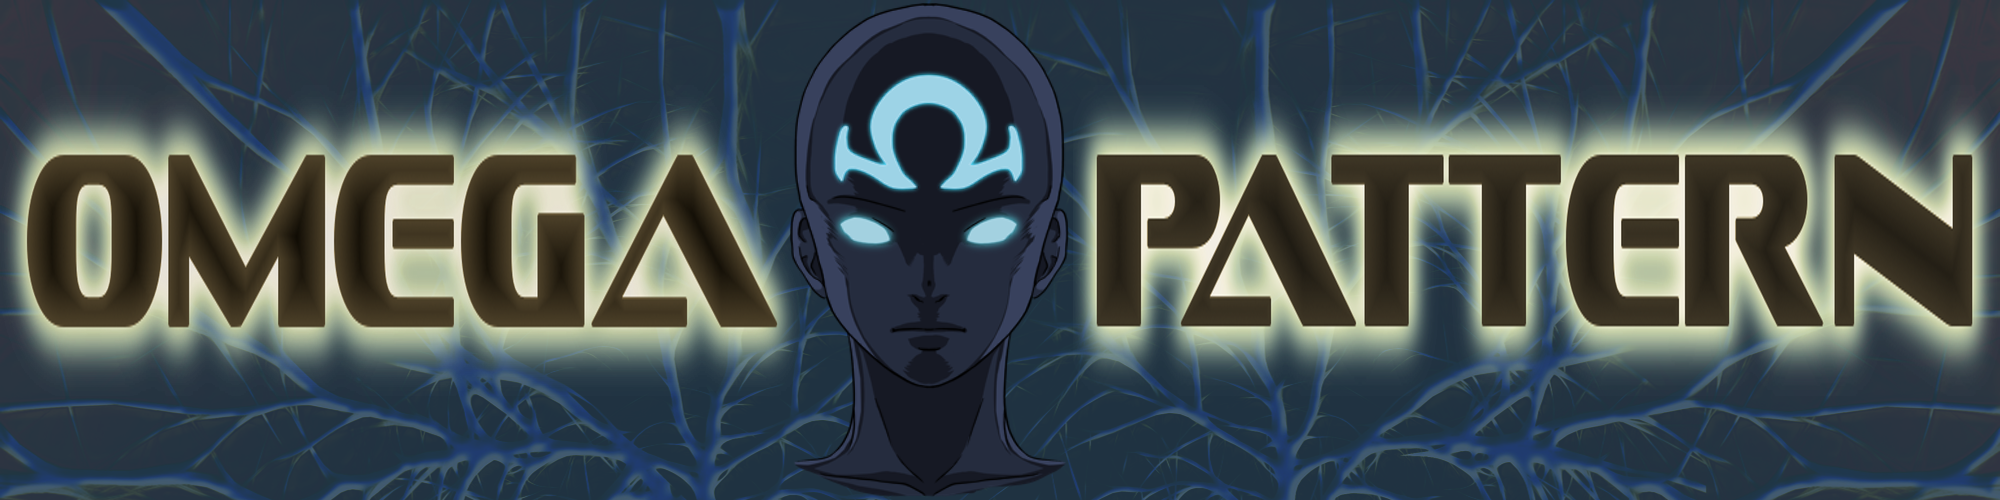 Omega Pattern Free - Visual Novel